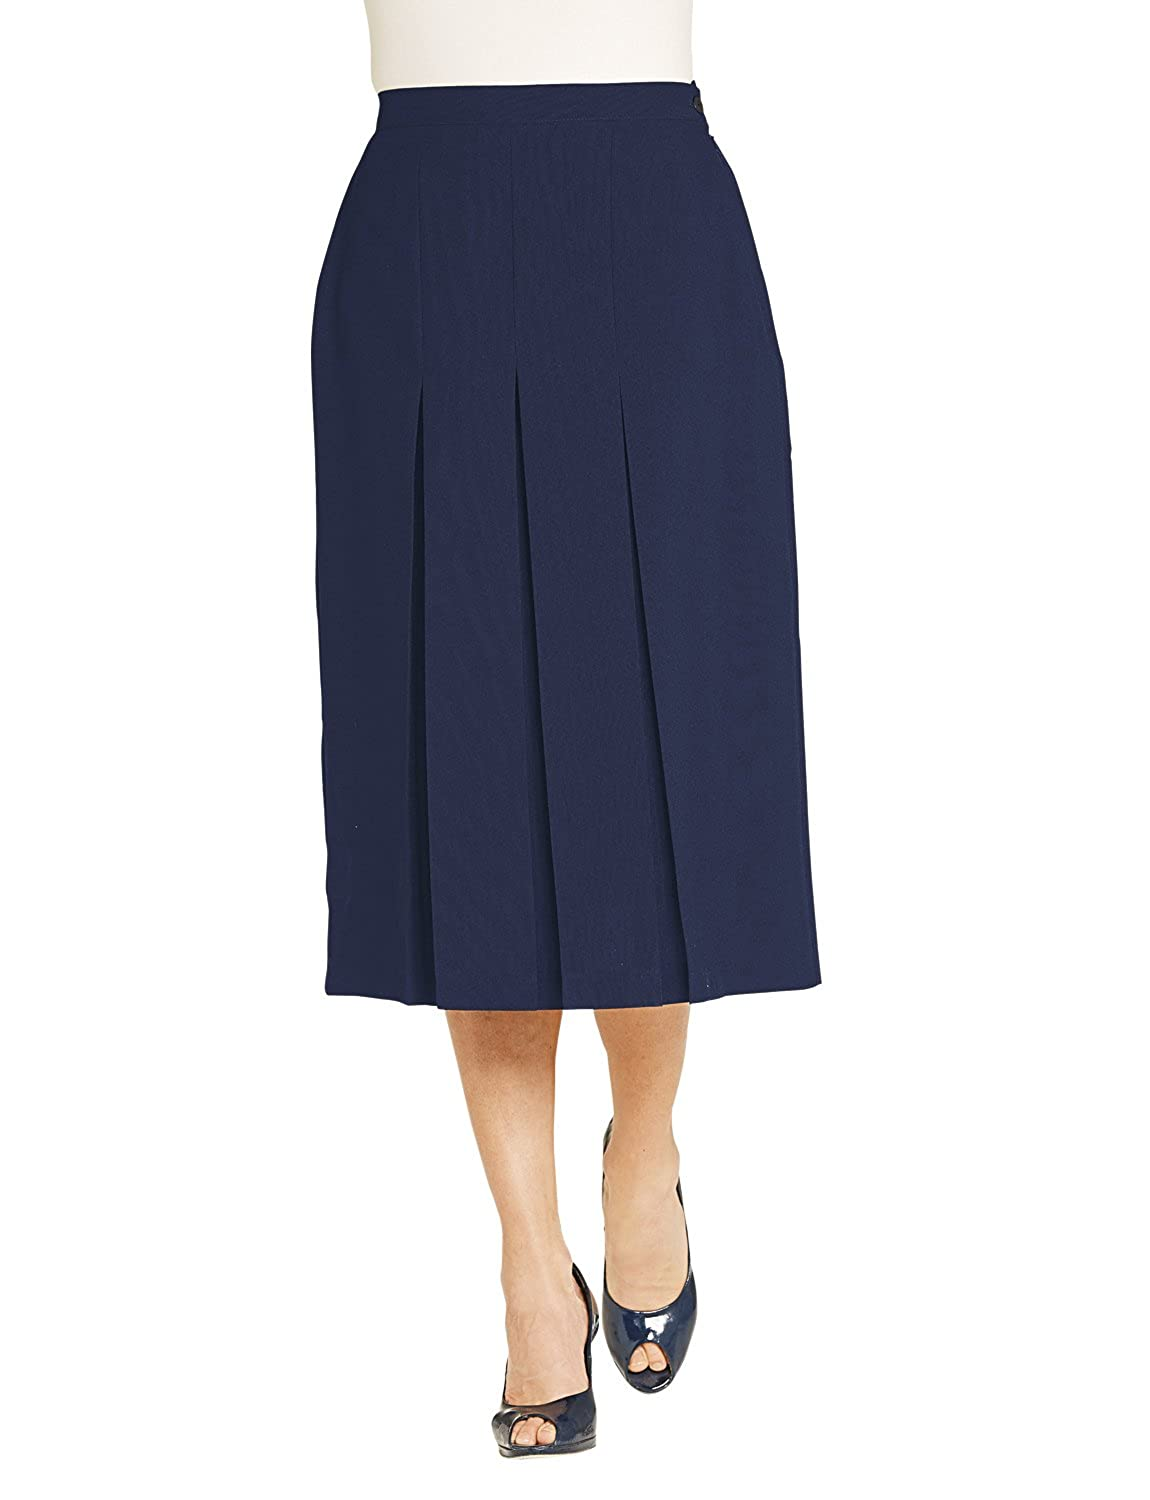 1940s Style Skirts- Vintage High Waisted Skirts Chums Ladies Womens Inverted Pleat Skirt 27 Inches £19.99 AT vintagedancer.com